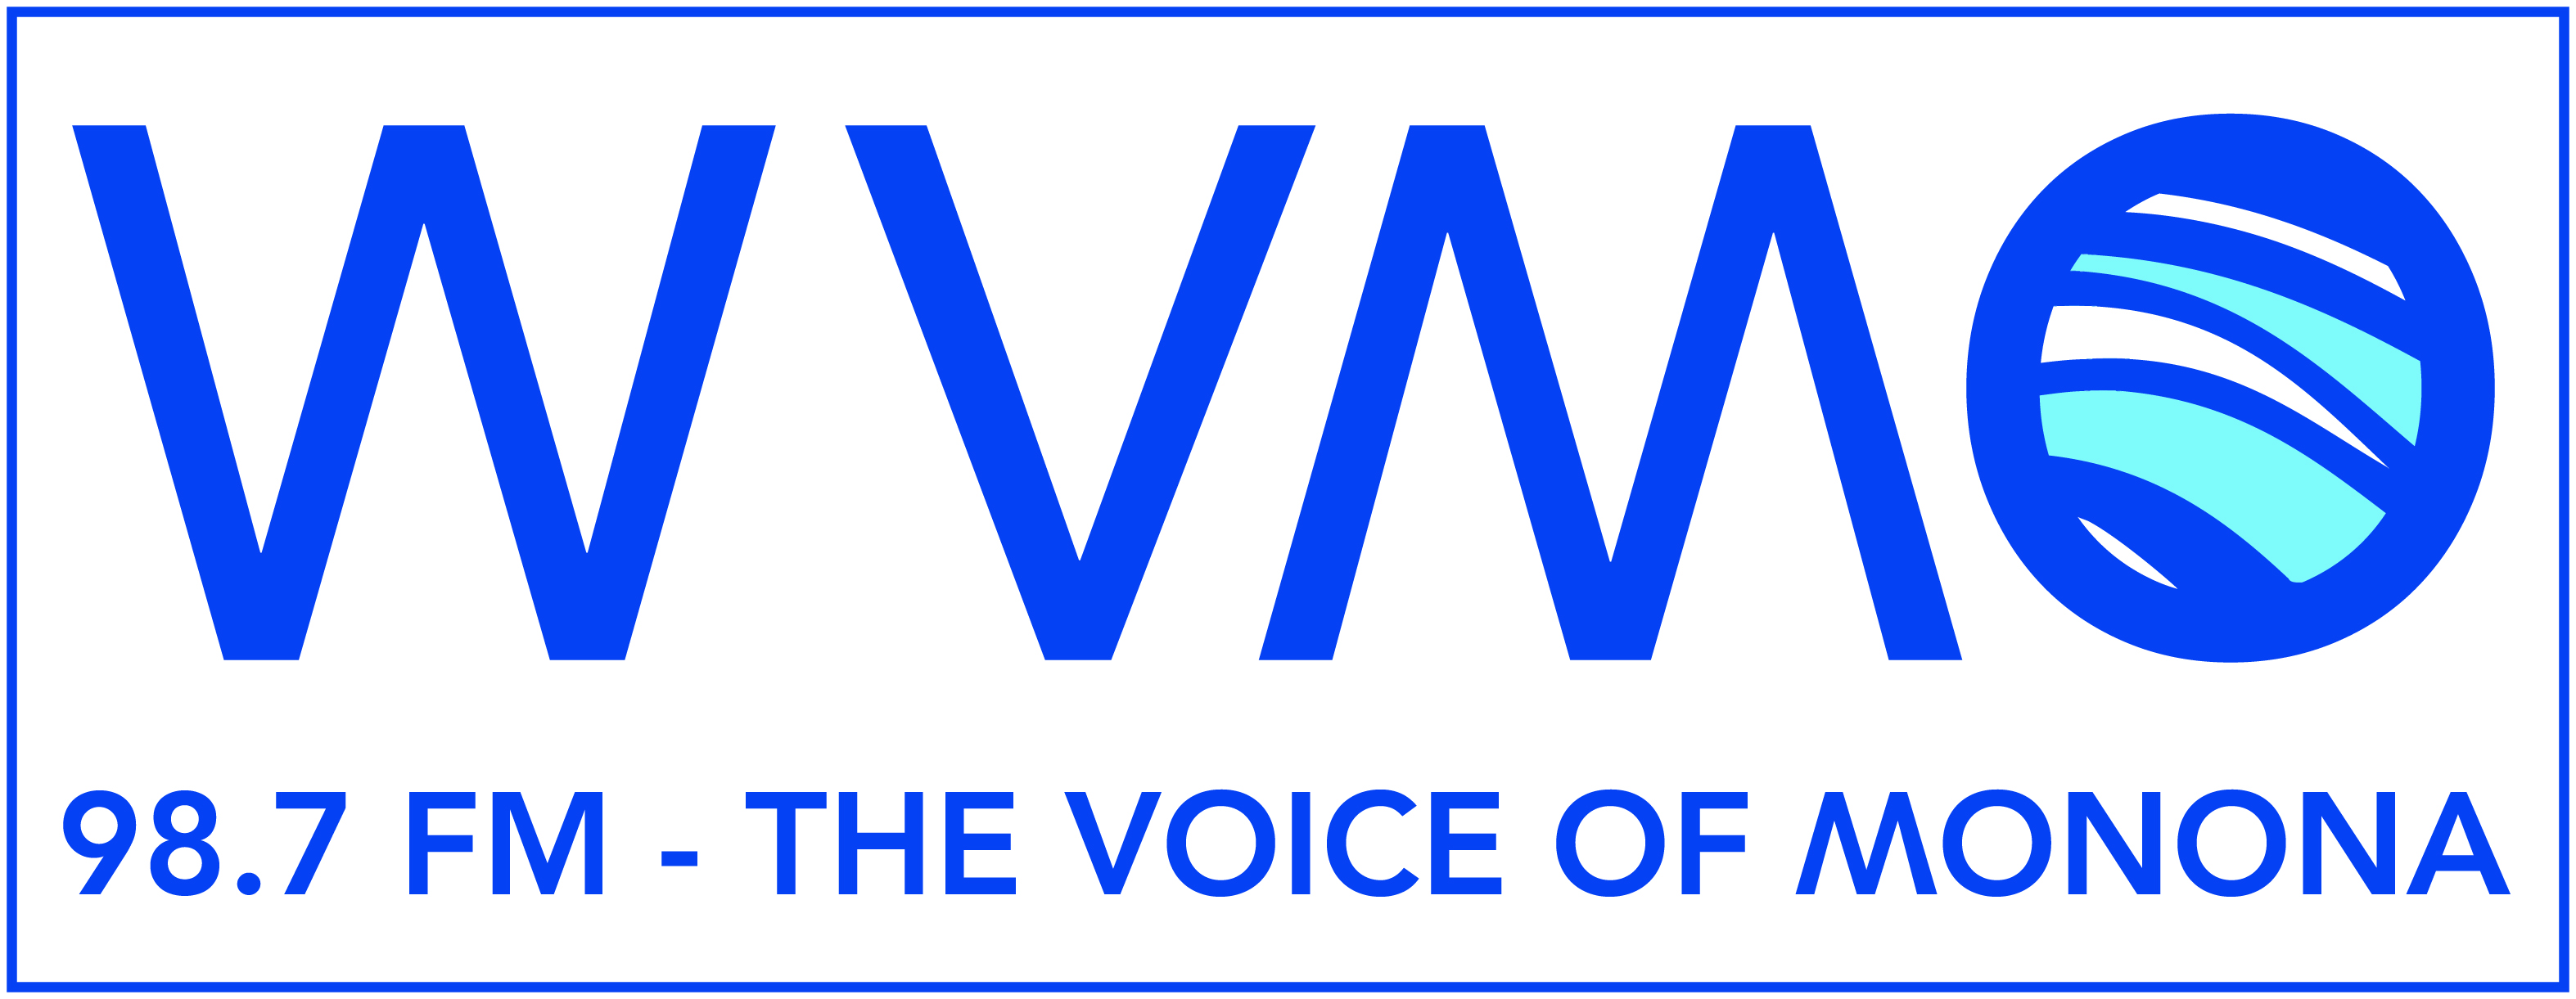 98.7 WVMO - The Voice of Monona